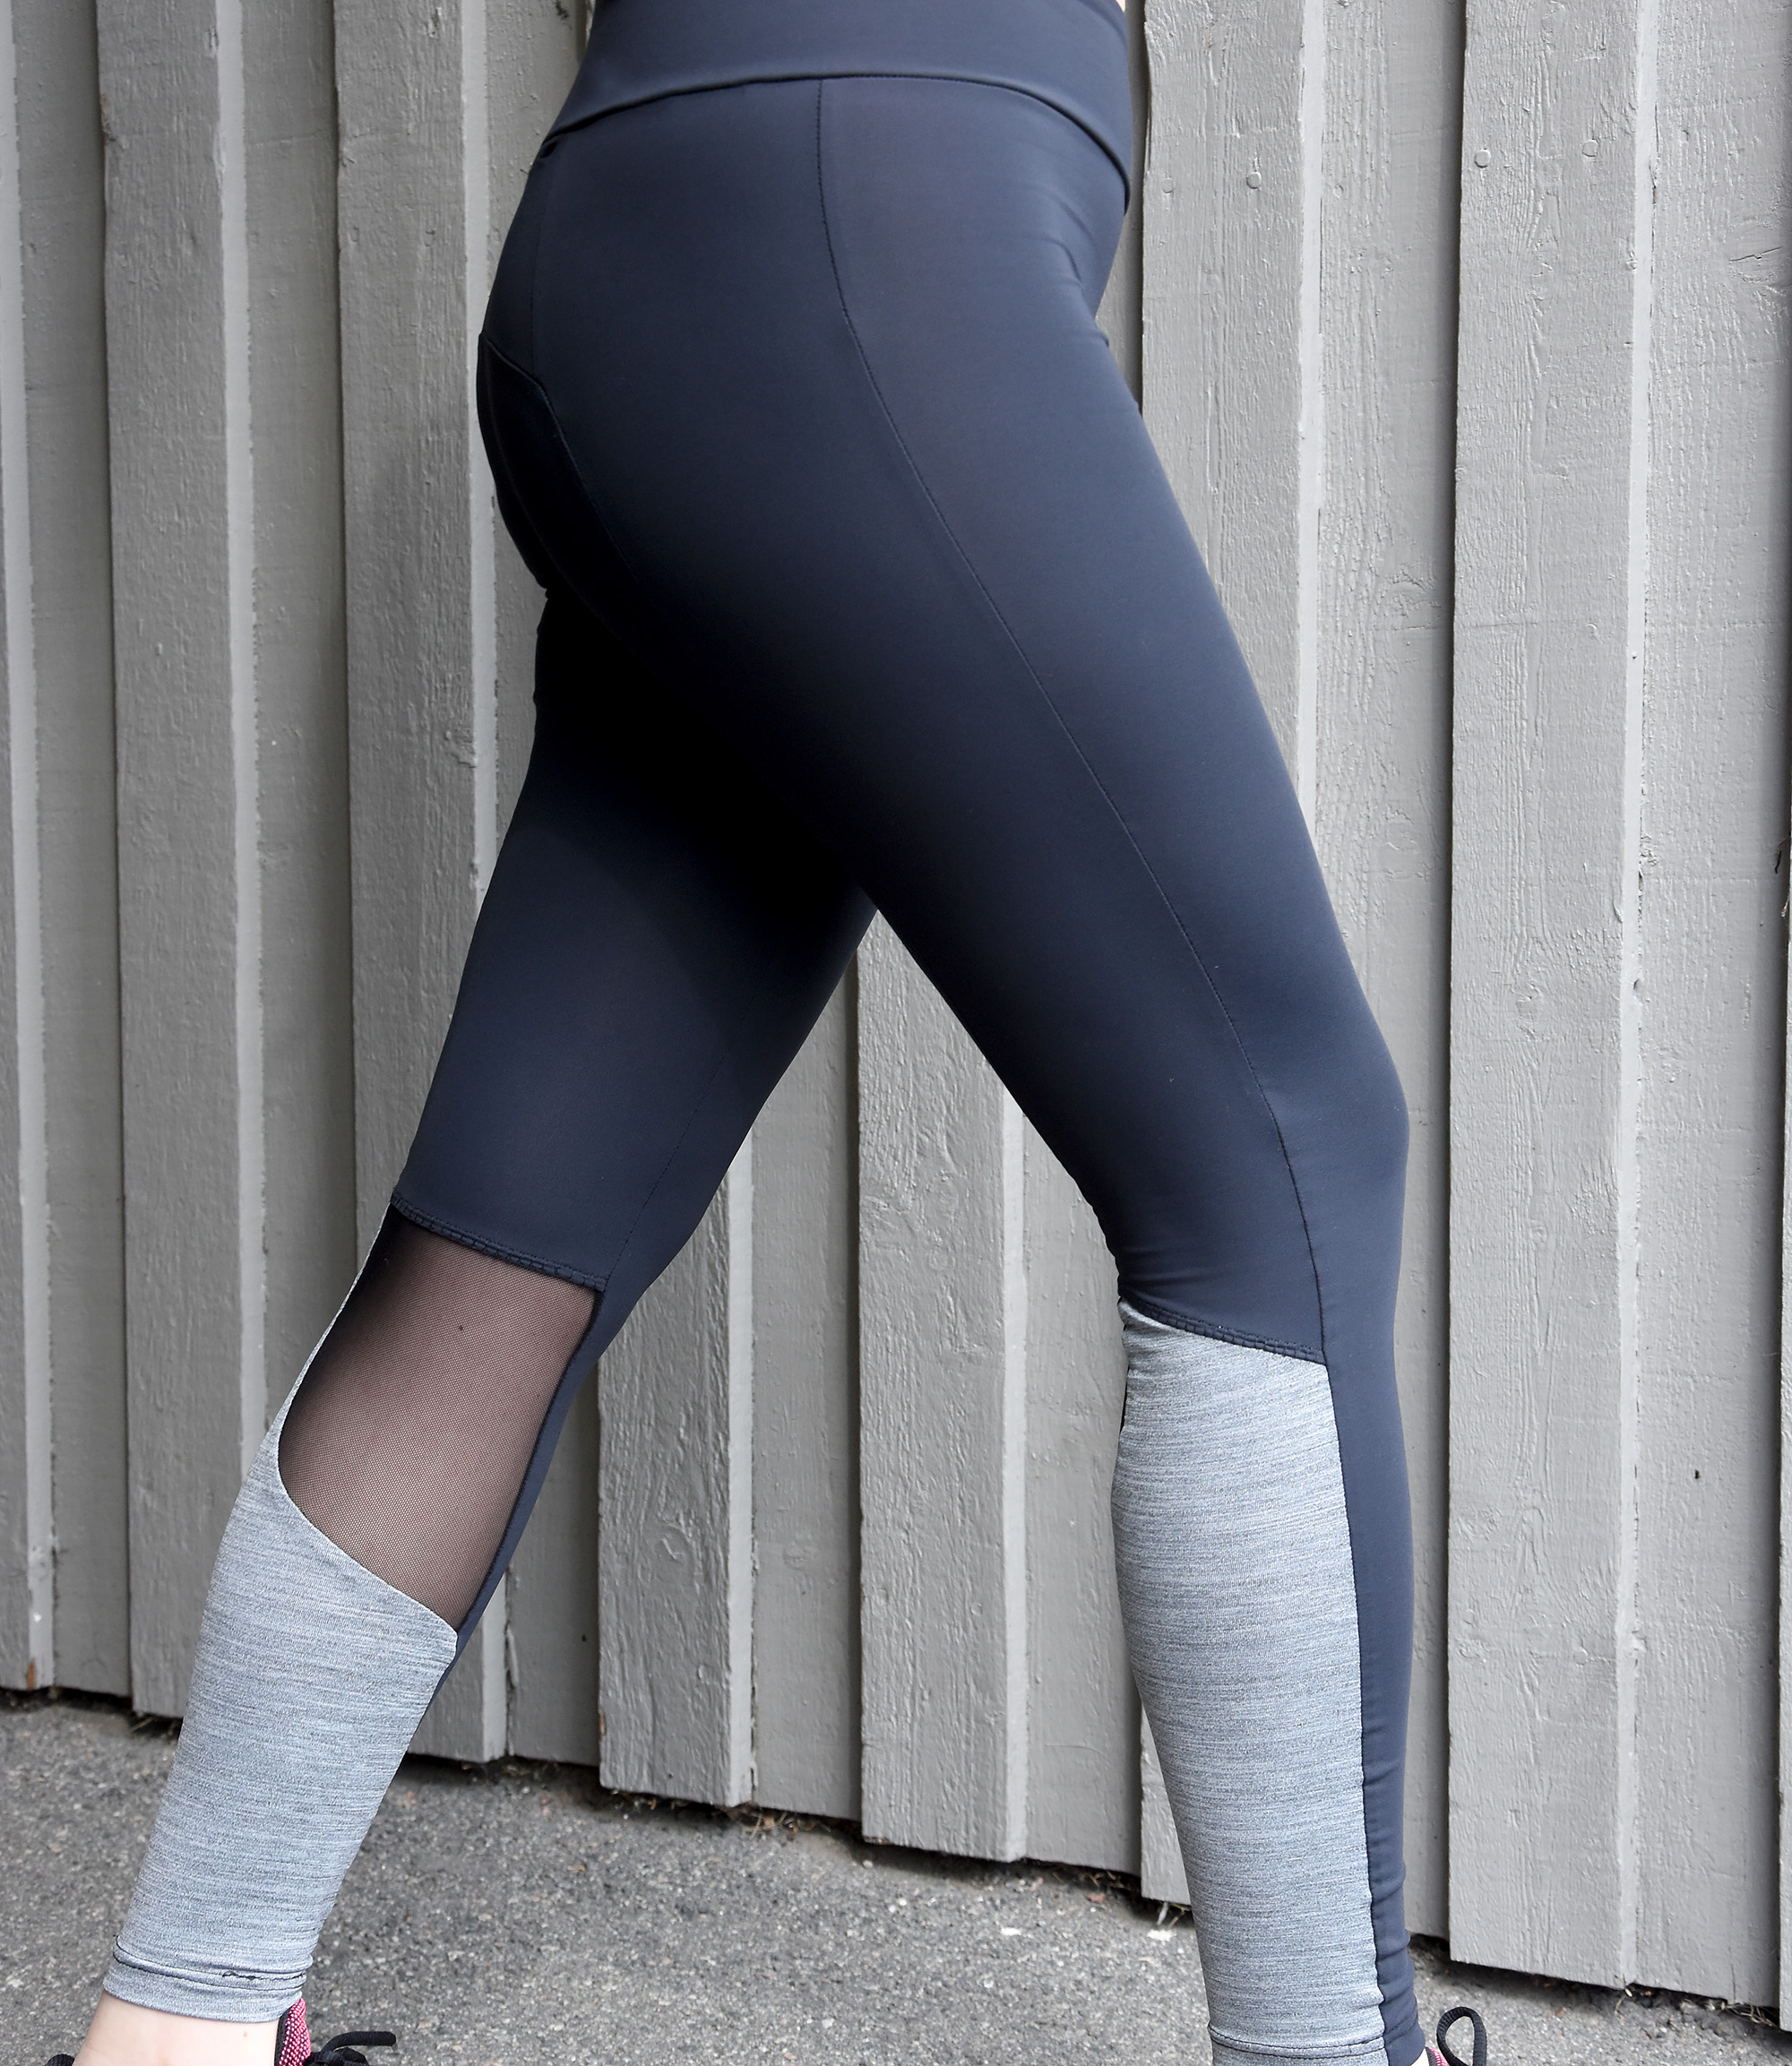 Cora leggings by Jalie Patterns